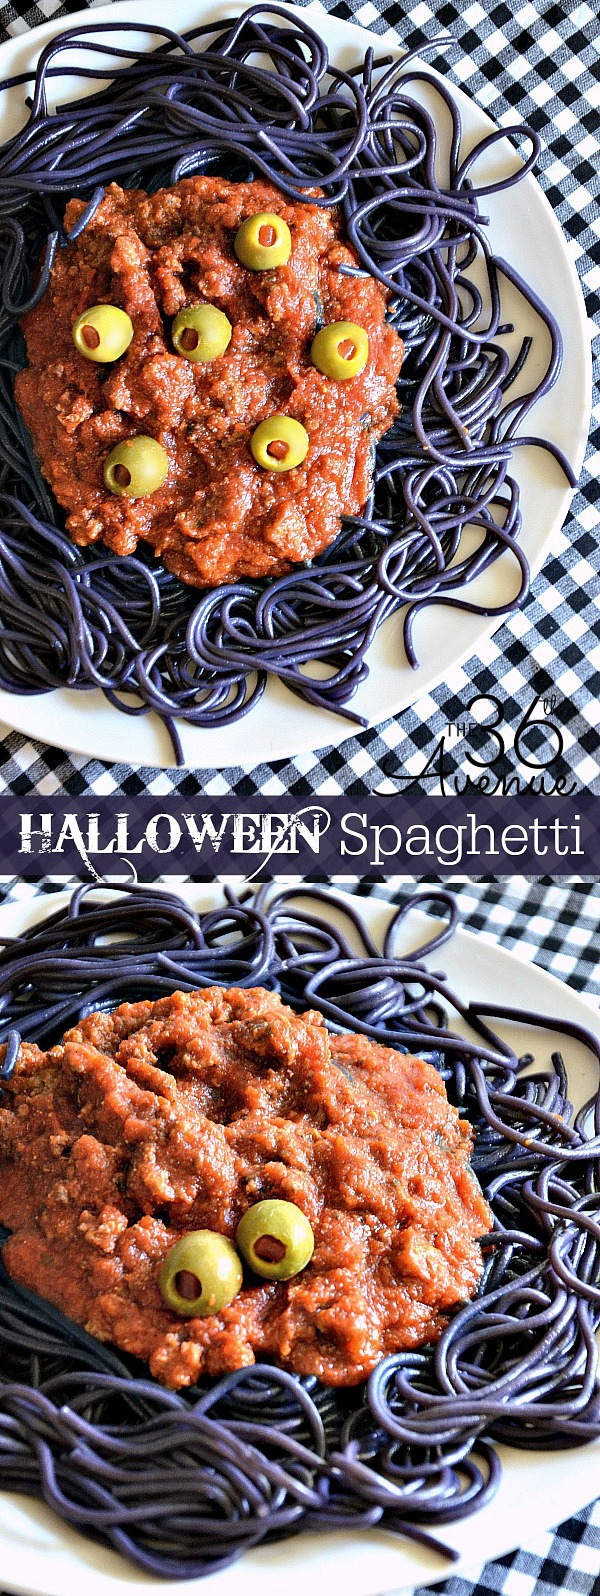 halloween-spaghetti-recipe-at-the-36th-avenue.jpg